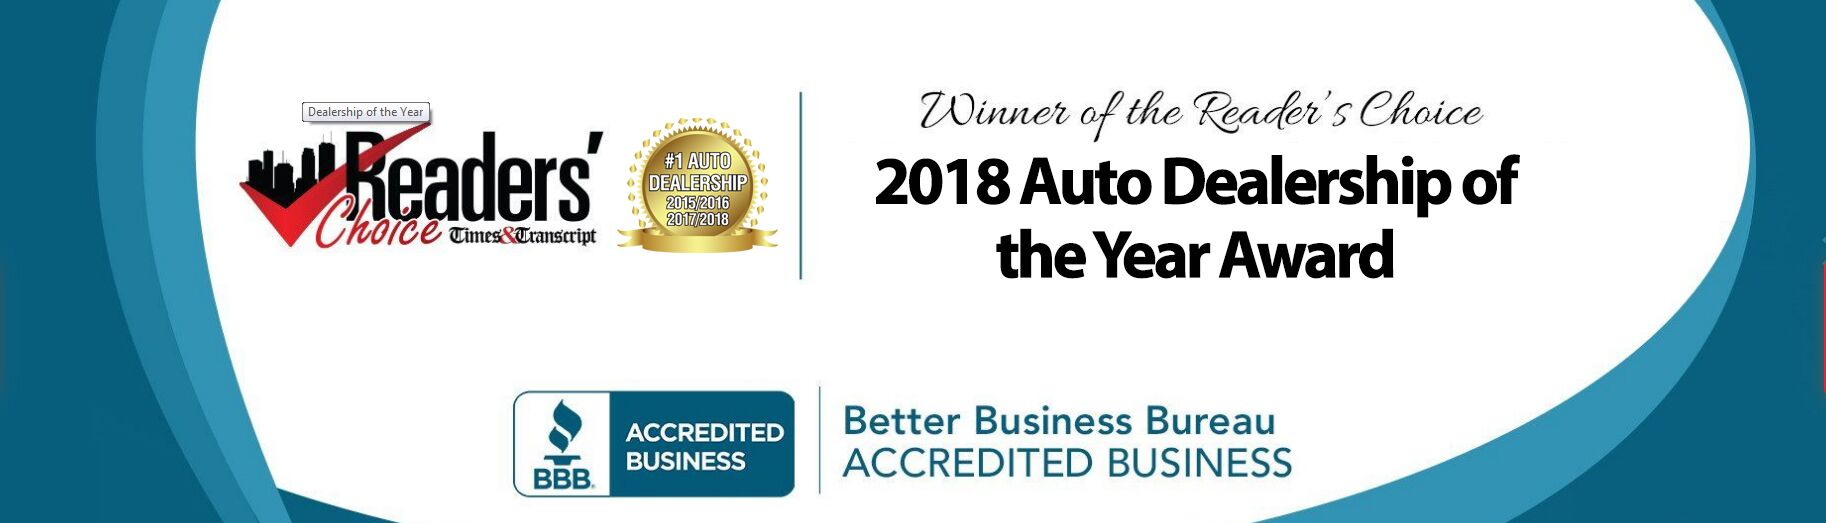 Dealership of the Year